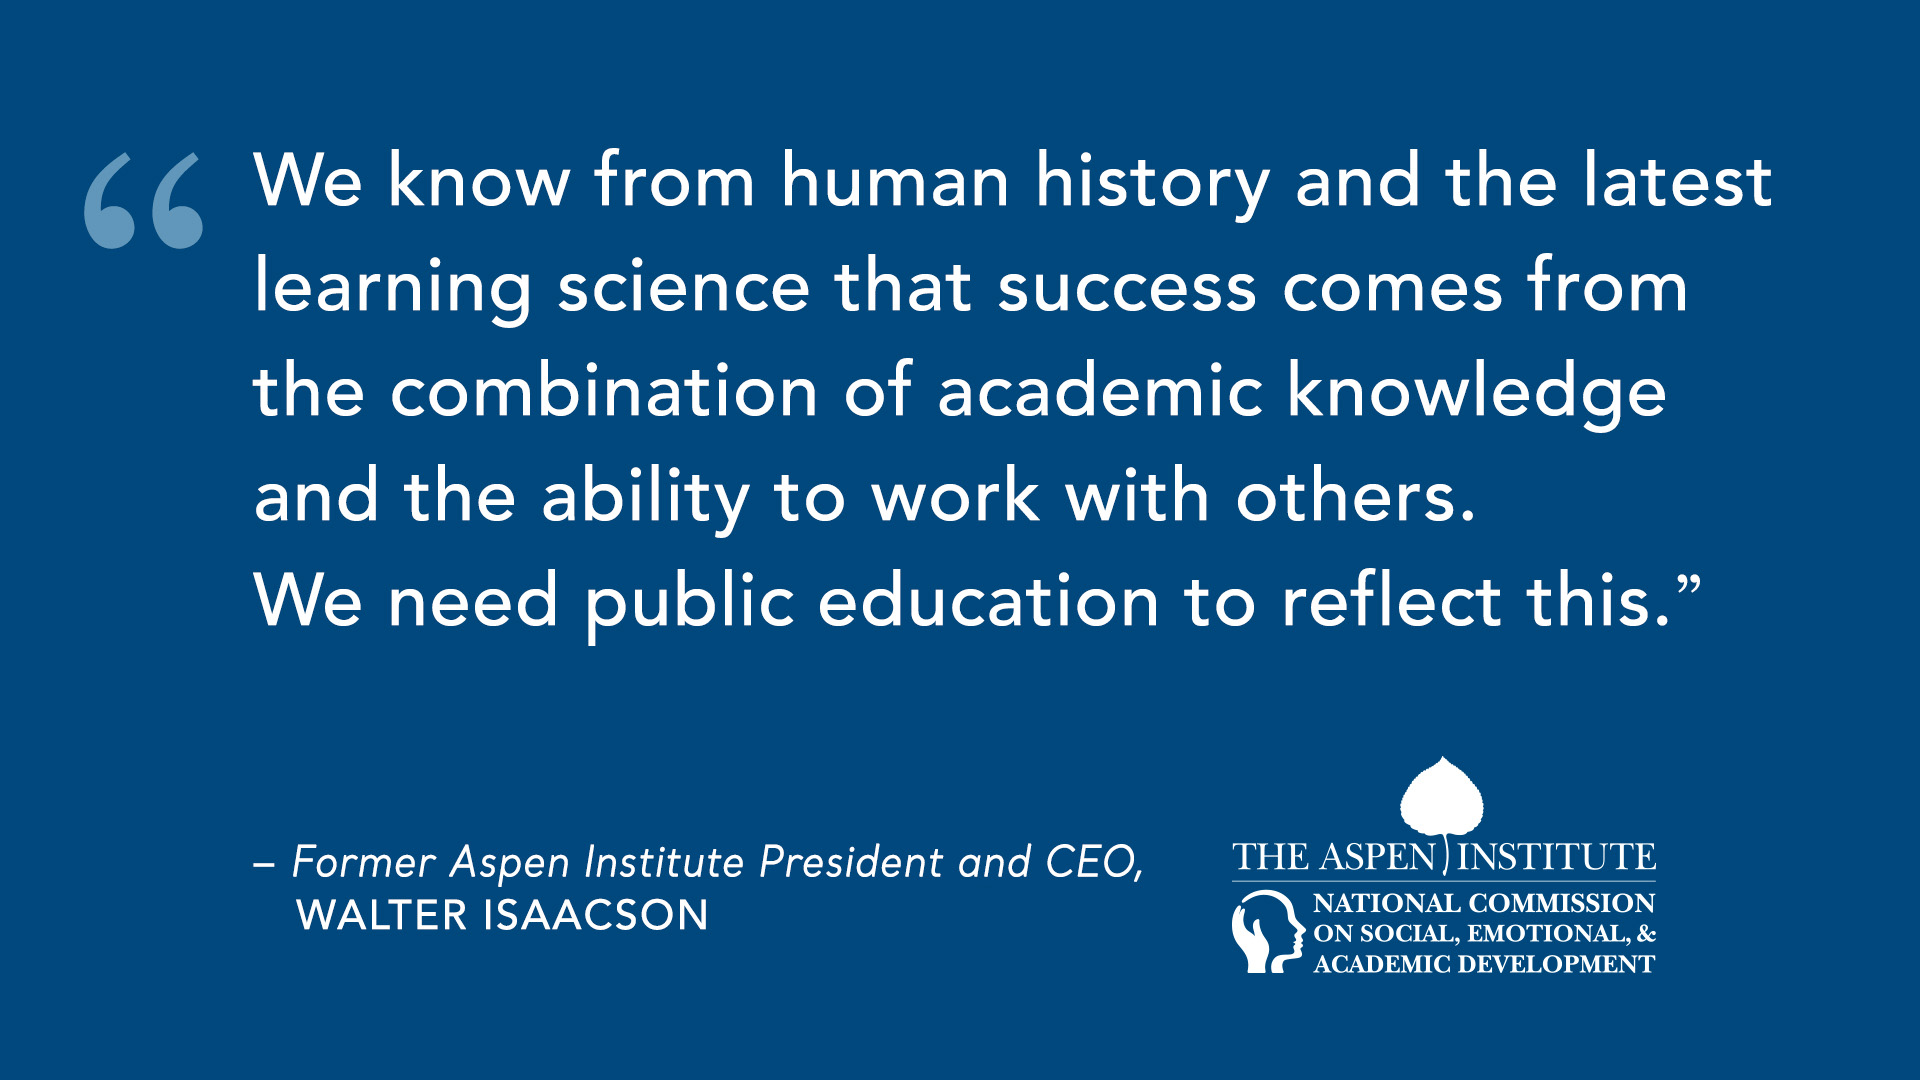 National Commission on Social, Emotional, and Academic Development - The Aspen Institute